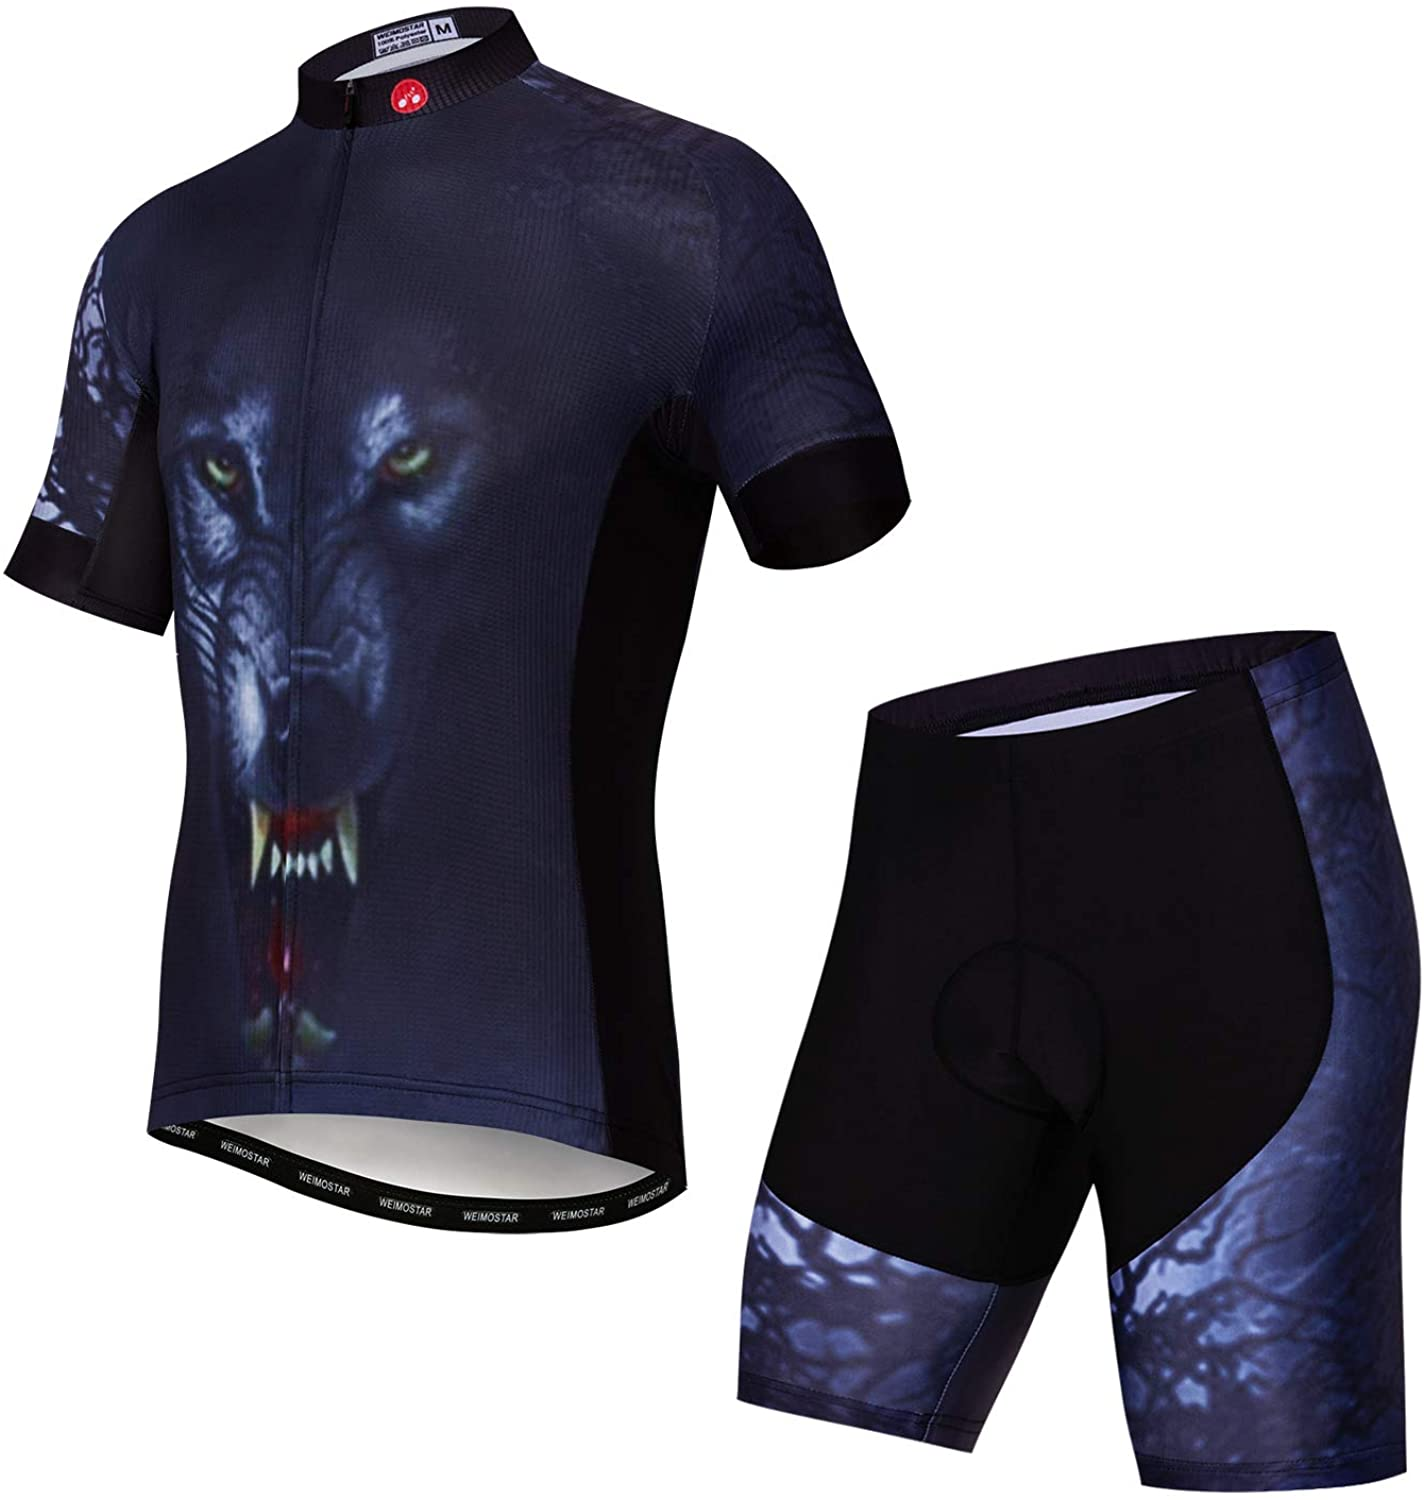 JPOJPO Cycling Jersey for Men Pro Team Bicycle Clothing MTB Bike Jerseys Shorts Set